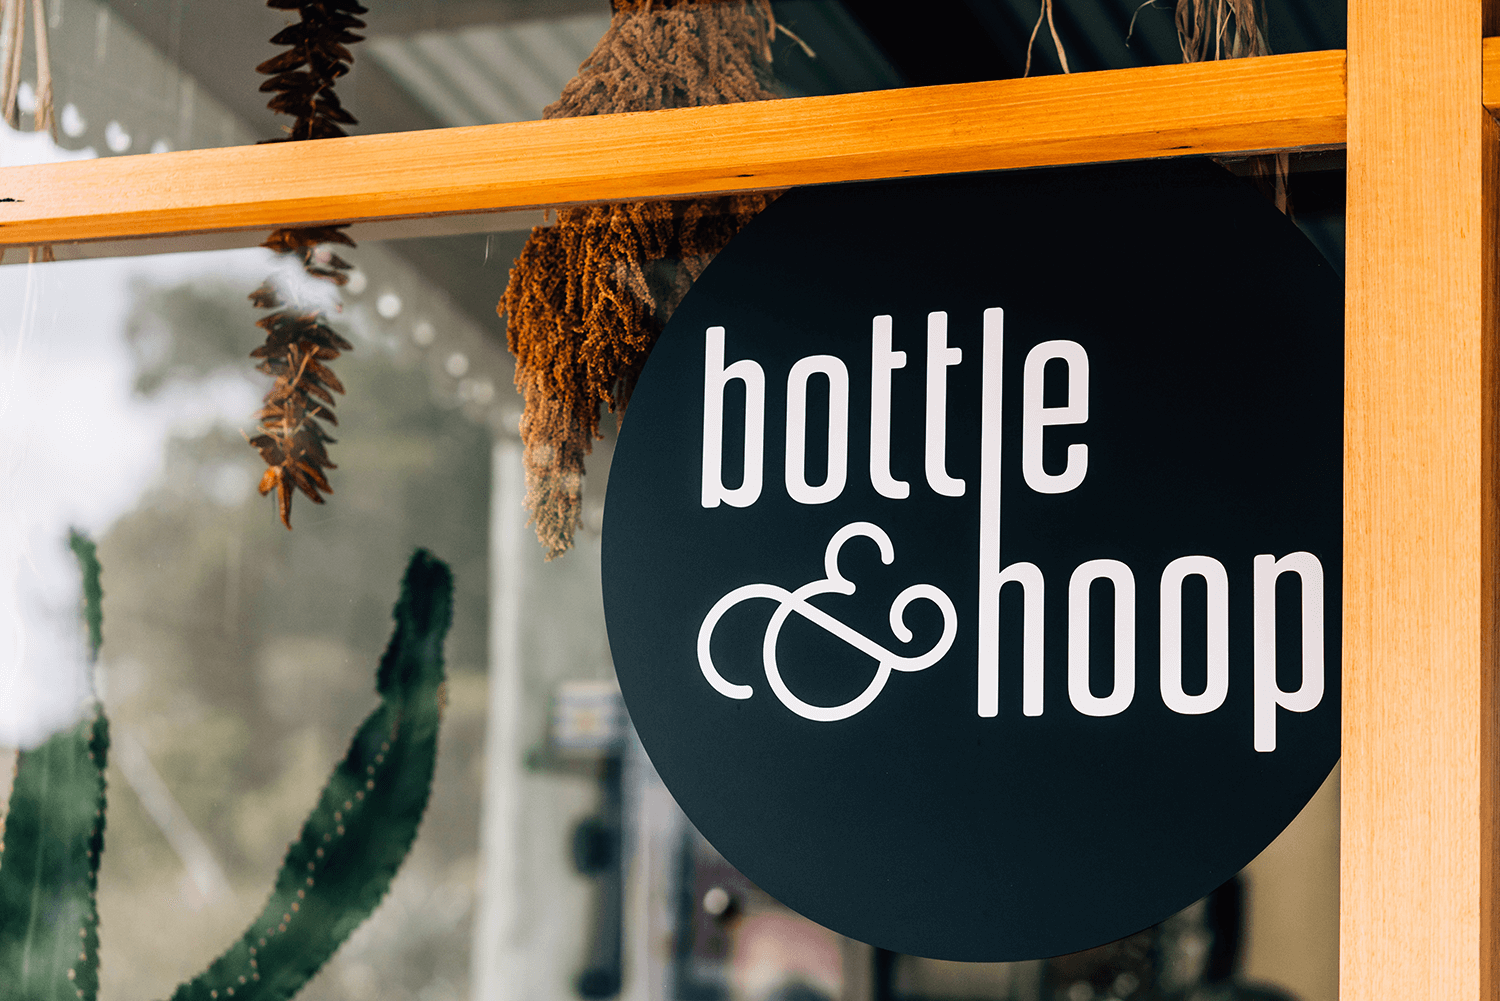 Bottle and Hoop sign